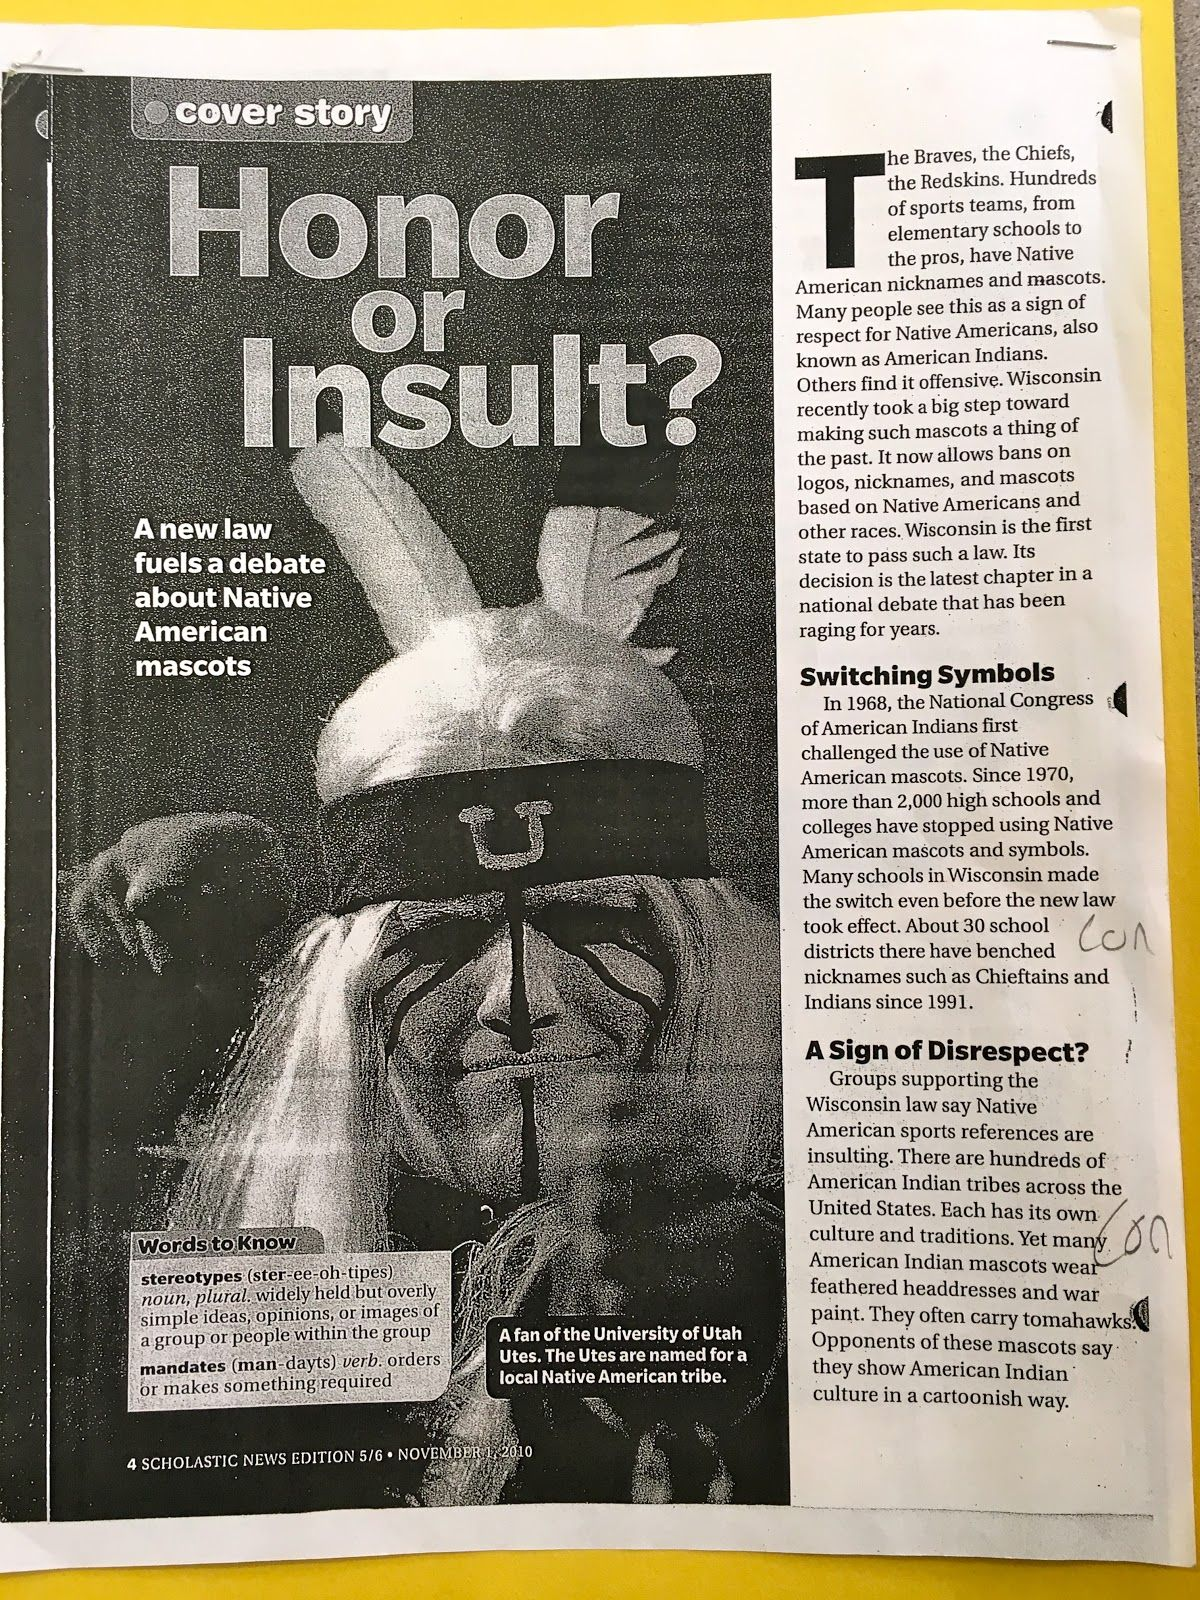 Persuasive Writing Are Native American Mascots And Insult